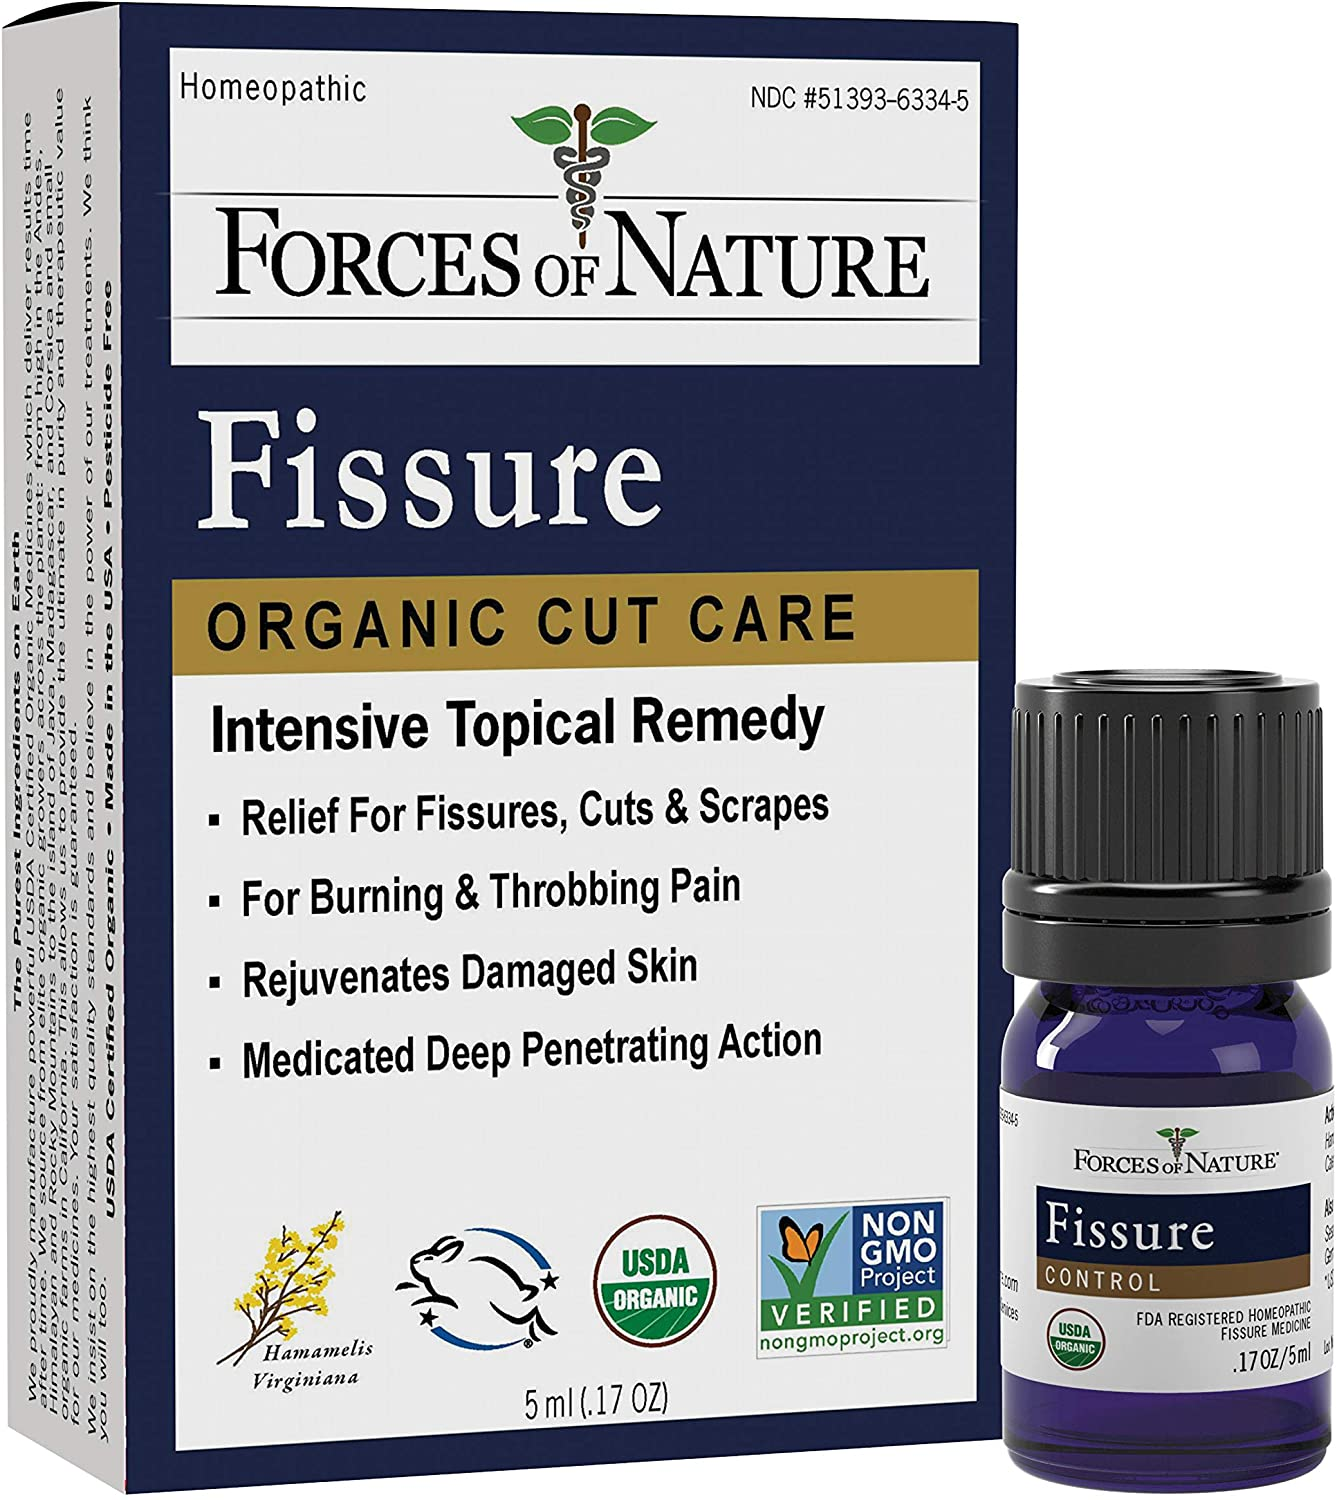 Forces Of Nature – Natural, Organic Fissure Care (5ml) Non GMO, No Harmful Chemicals –Soothe & Relieve Burning, Throbbing, Stinging, Itchy, Bleeding Tissue Caused by Fissures or Hemorrhoids